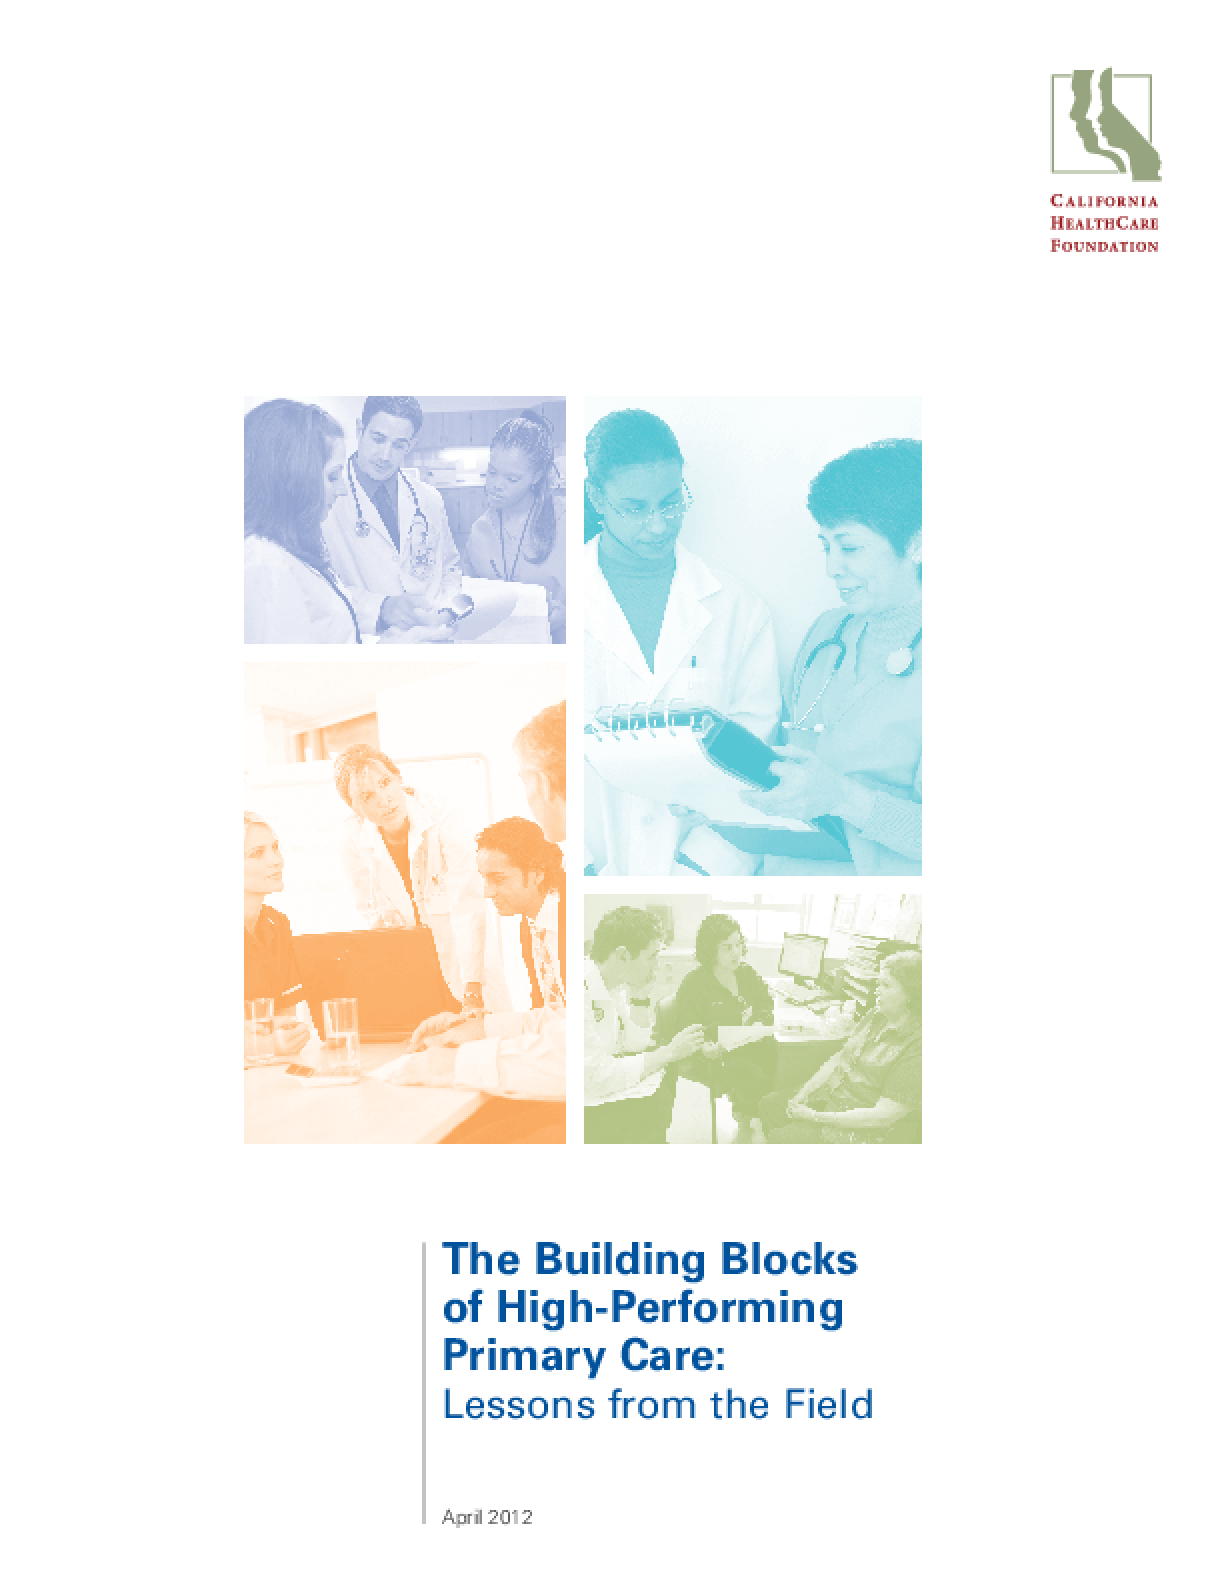 The Building Blocks of High-Performing Primary Care: Lessons From the Field